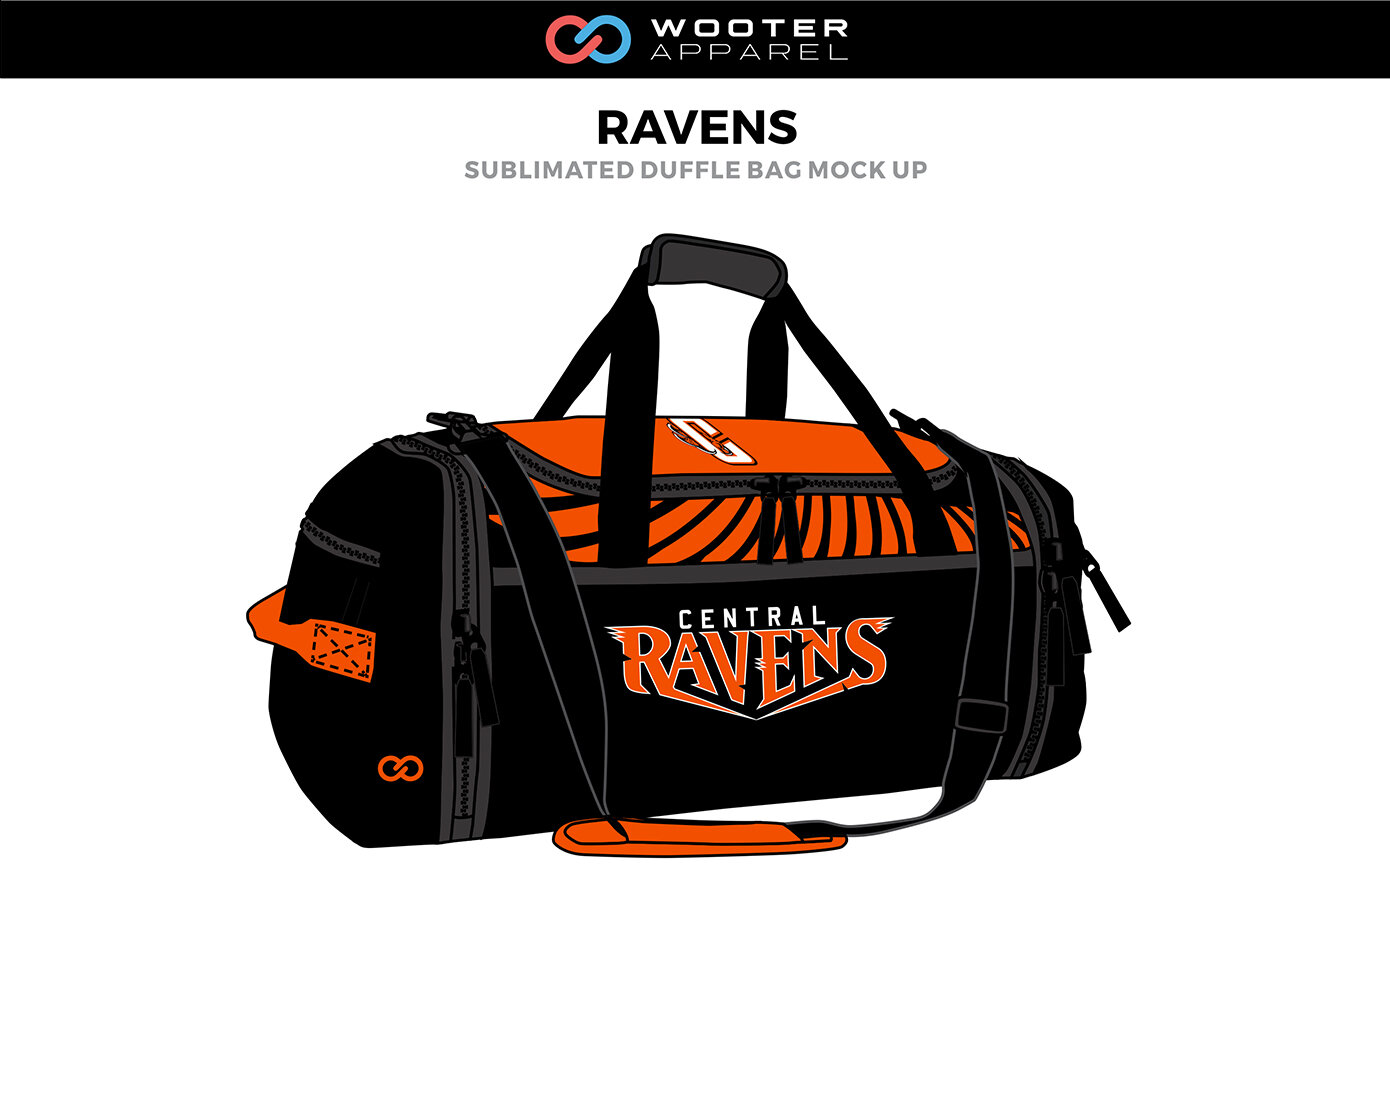 Custom Duffle Bags Wooter Arel Team Uniforms And